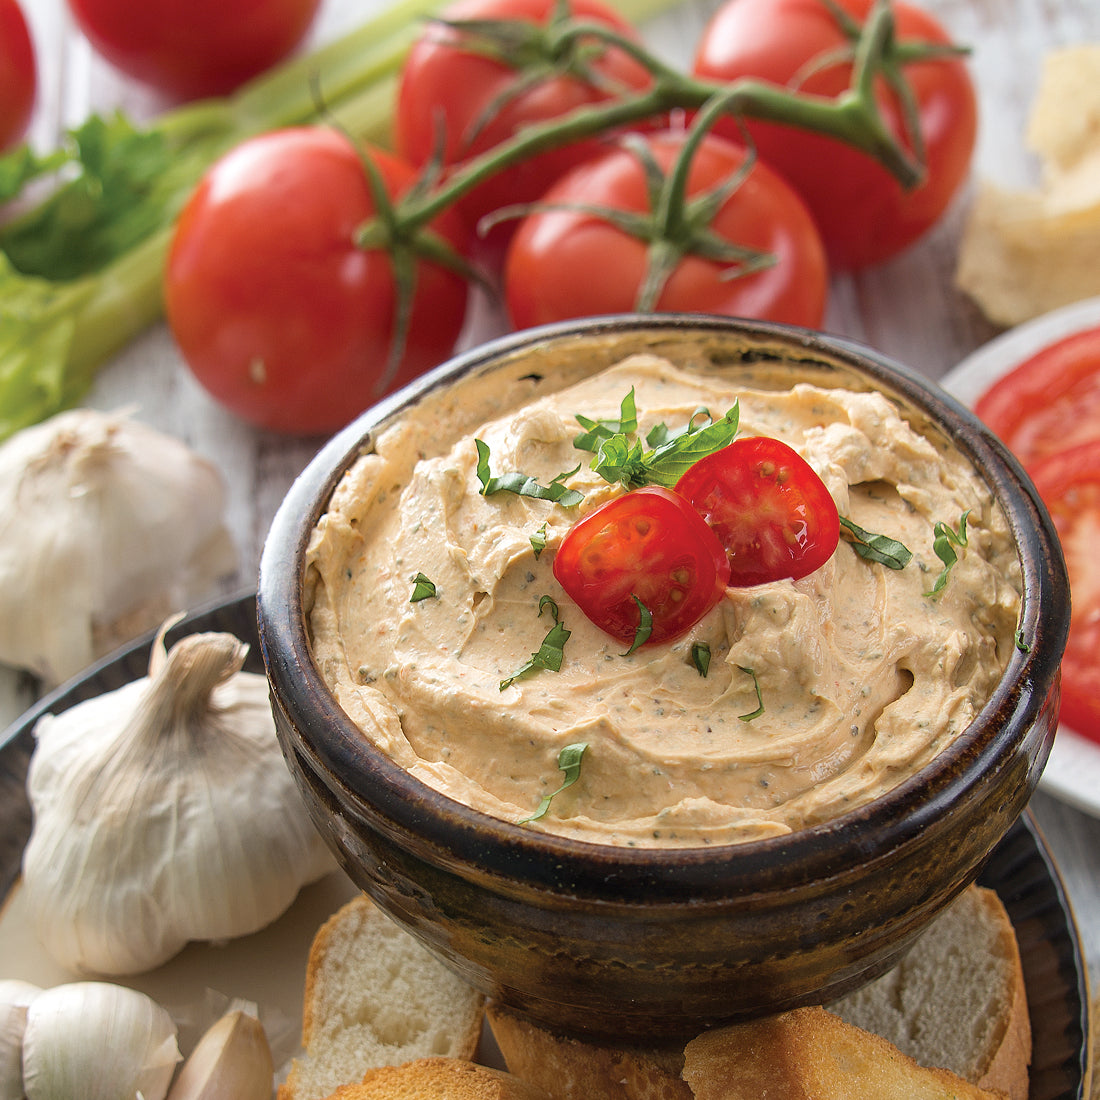 Tomato, Garlic and Basil Dip mixed with sour cream and served with veggies.